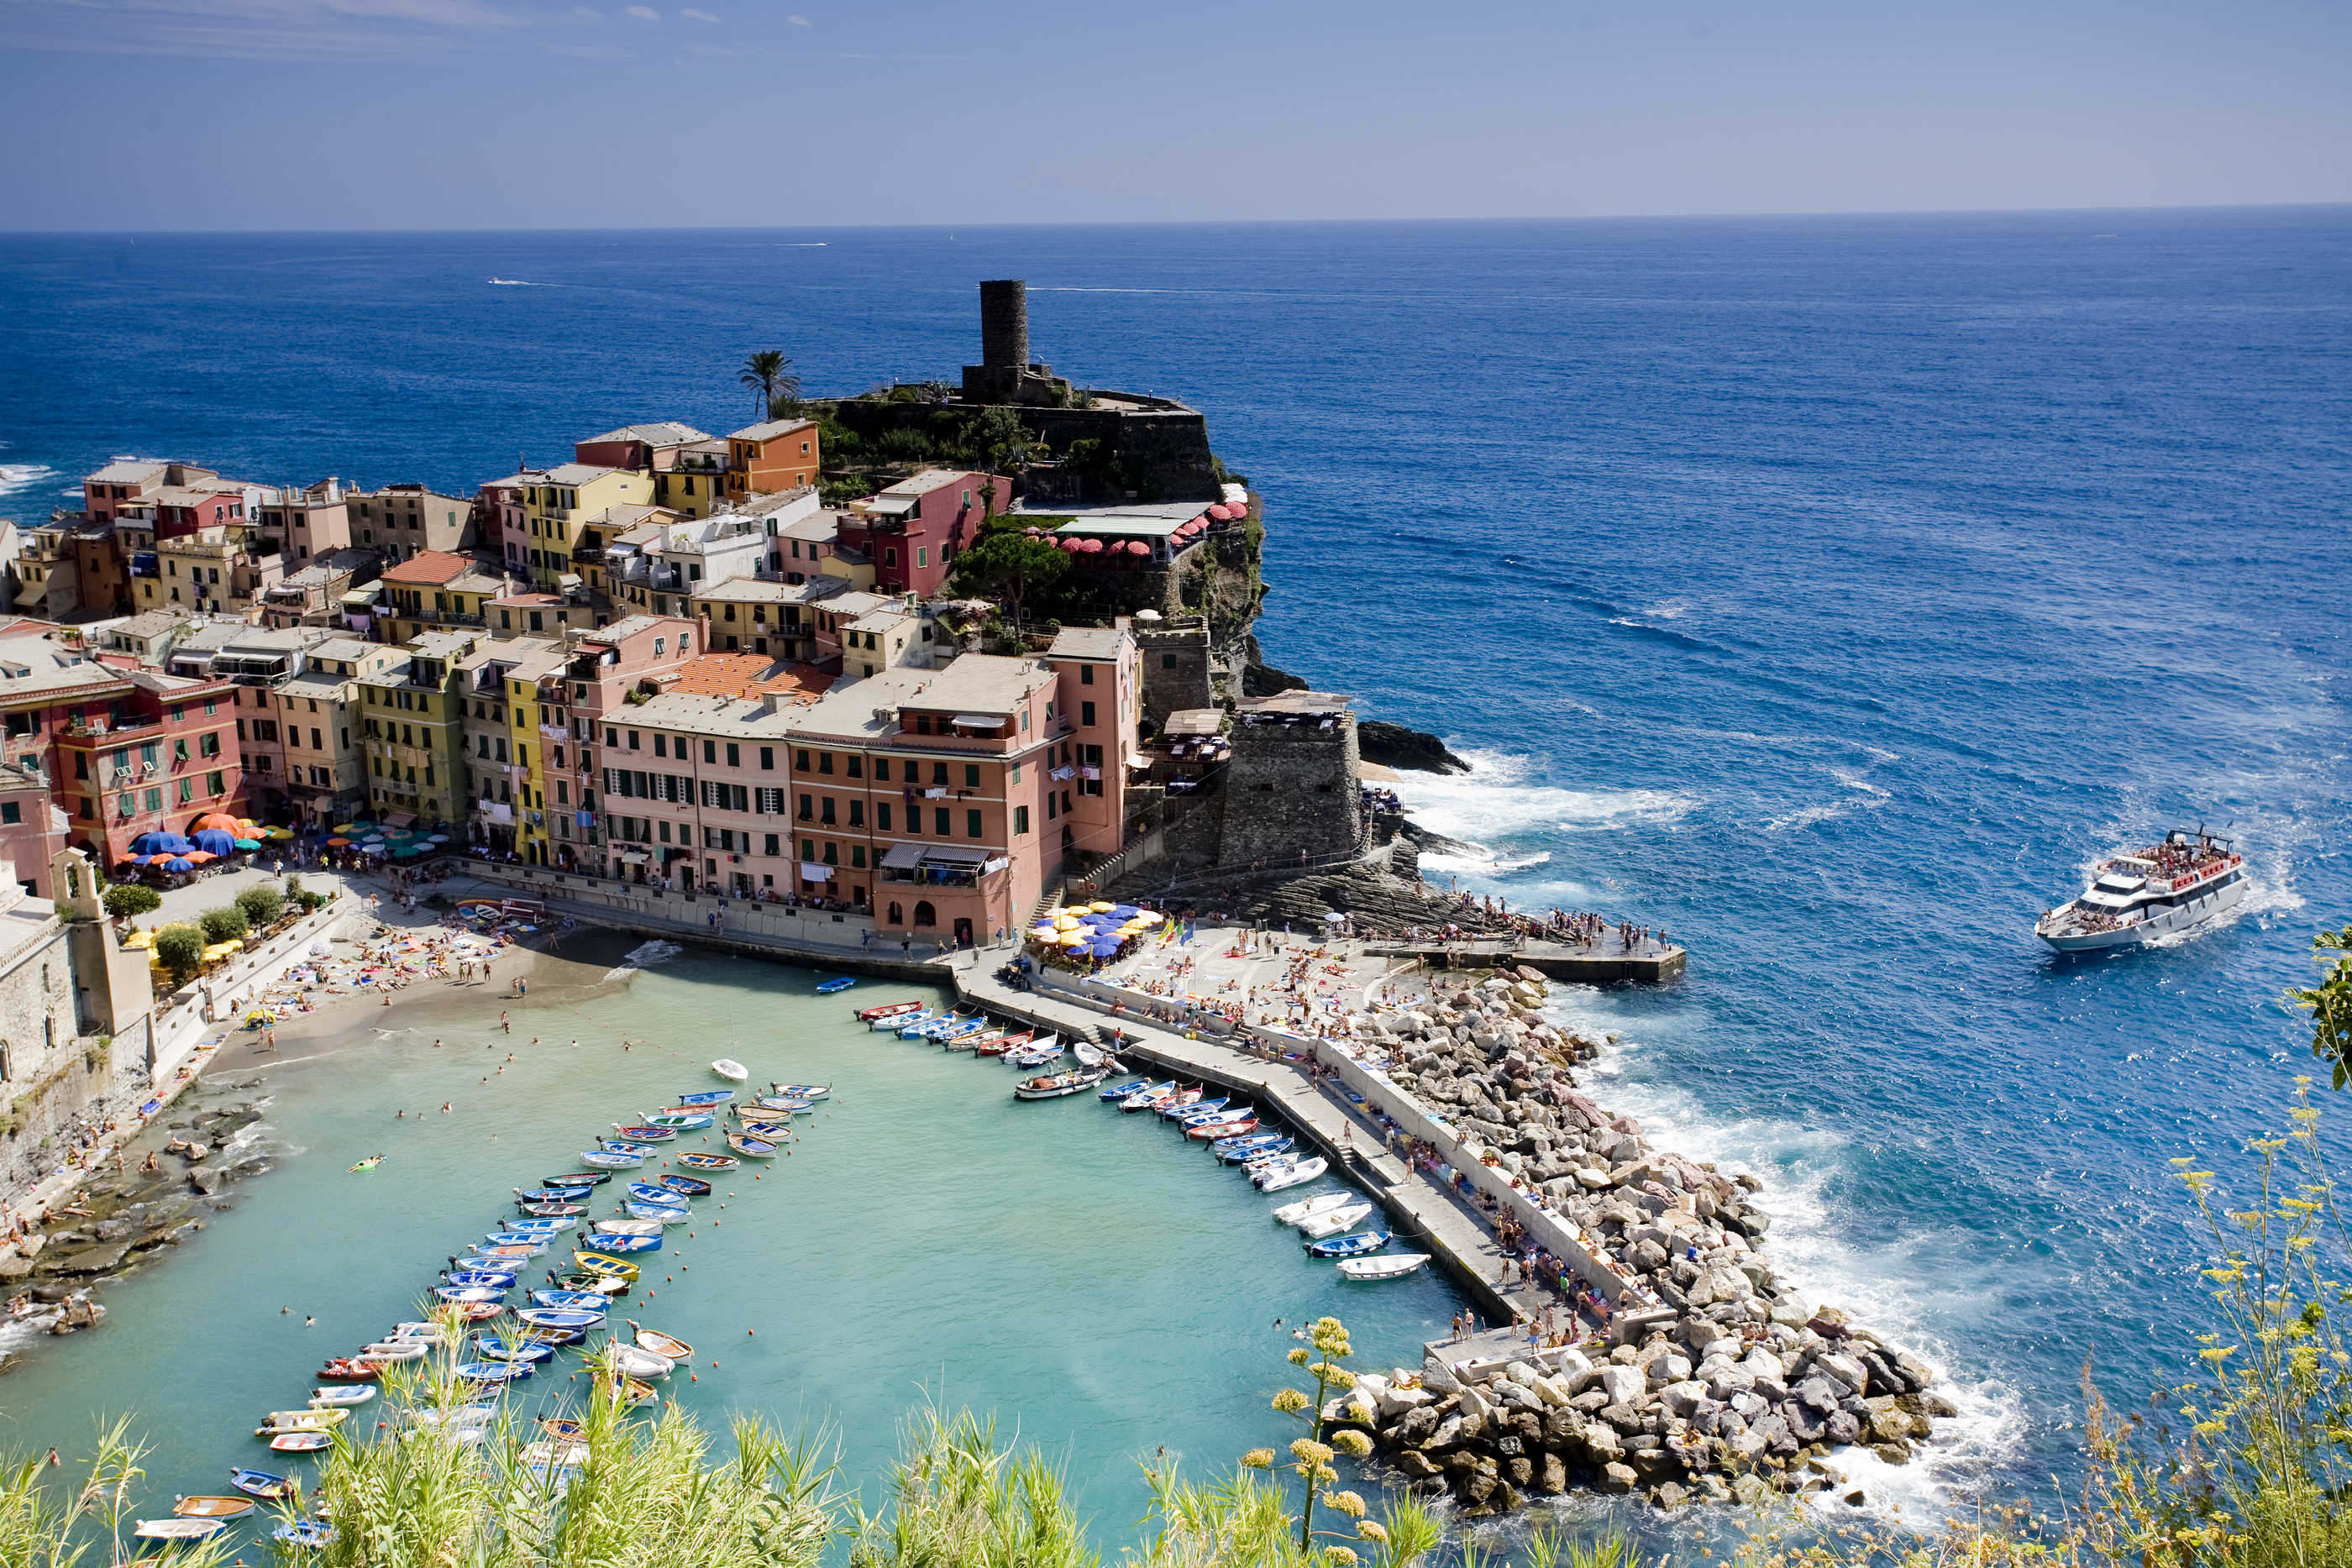 my trip to hystorical and eventful italy Read an italian's tips on how to experience italy like a local  read all of my  forbes articles here and check out more of my travel stories at.